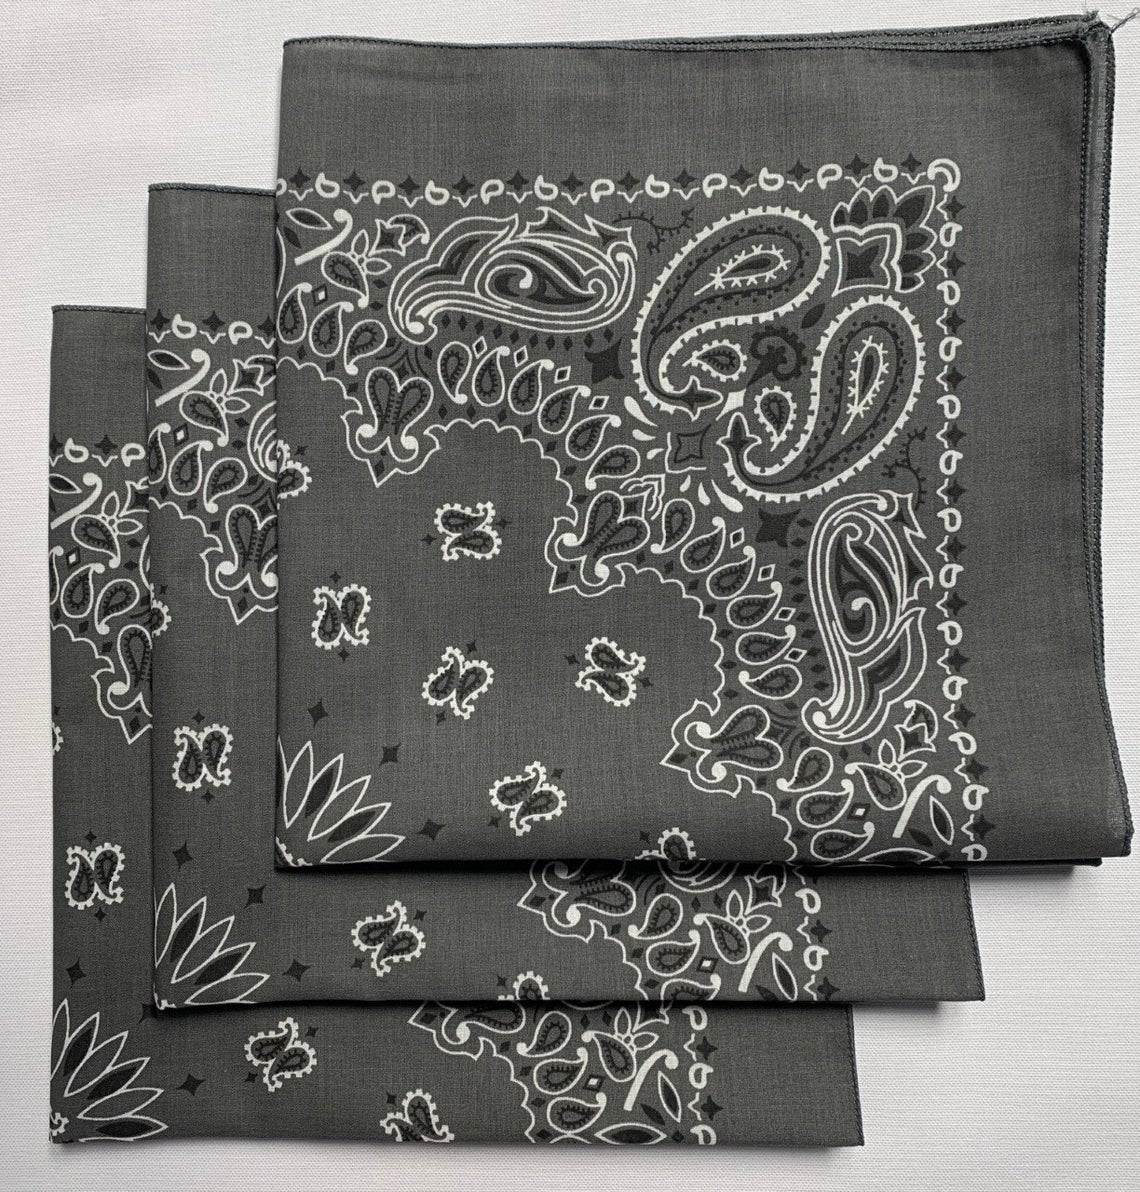 "Charcoal Paisley Bandanas - Made In The USA (3 Pk) 22"" x 22"""